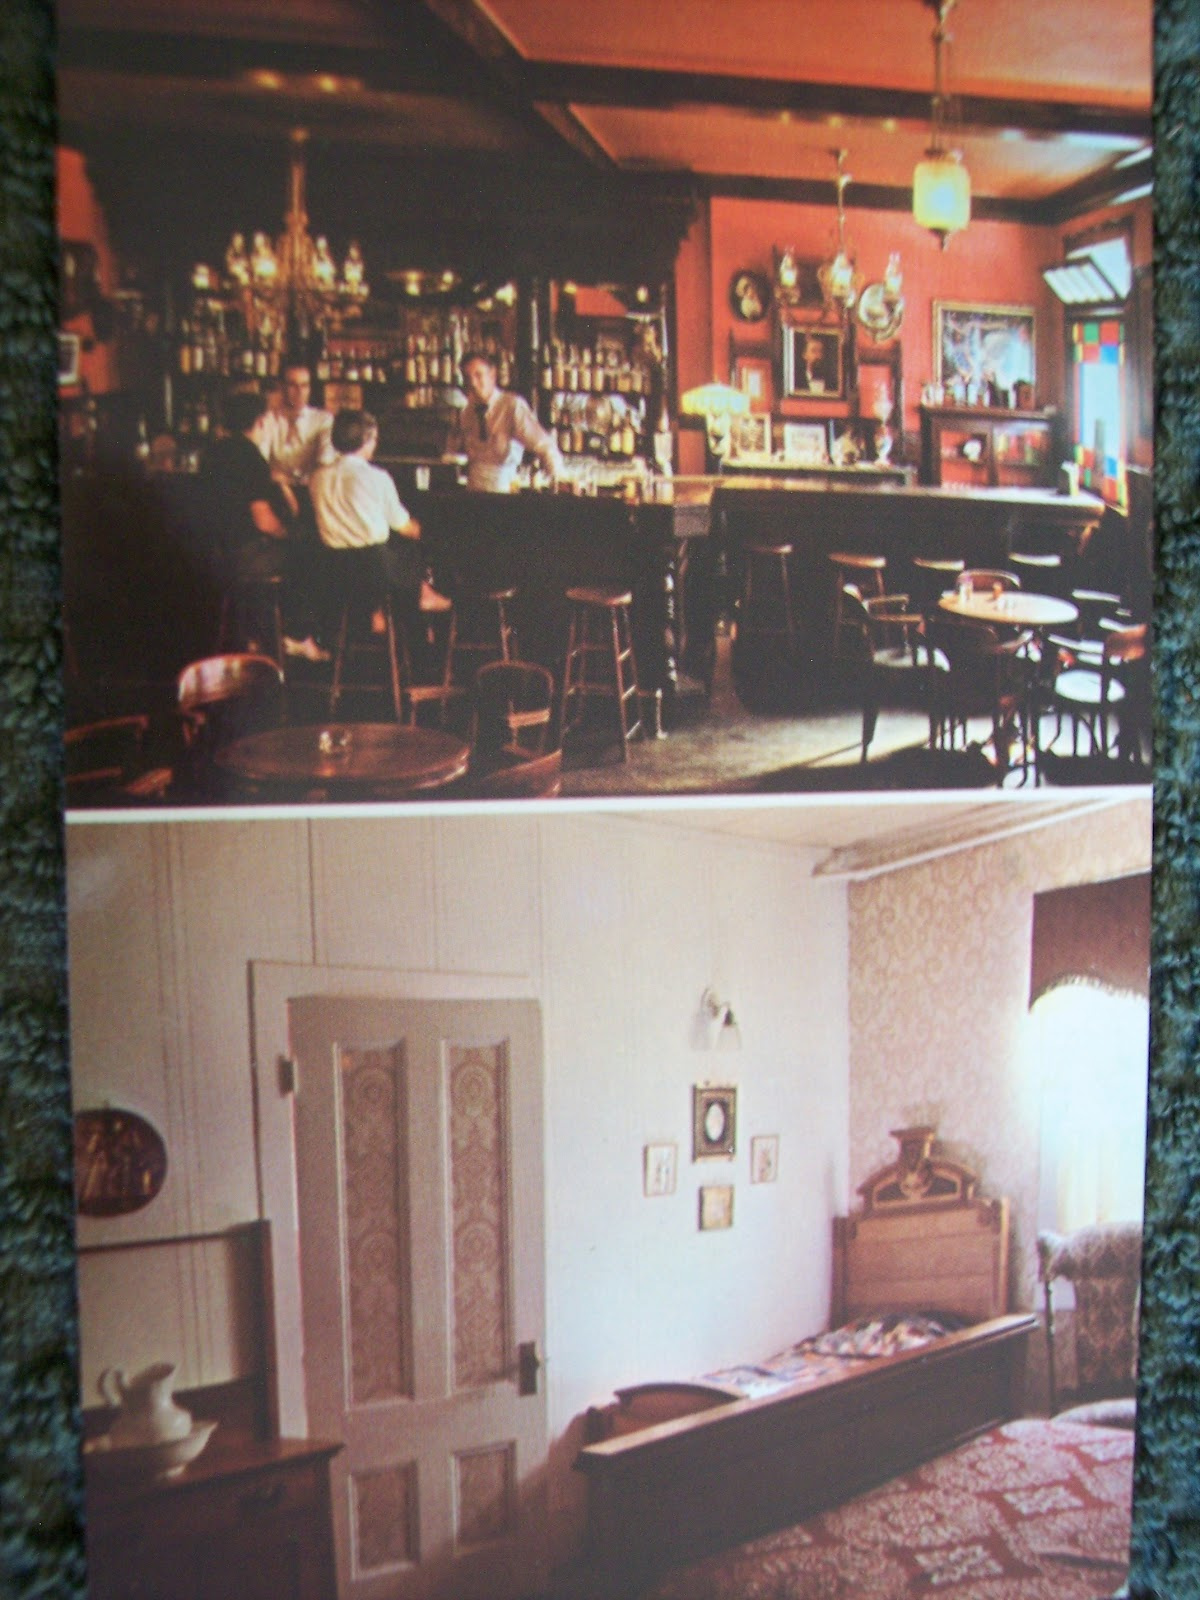 Above A Bit More Uncommon Postcard With Inside Shots Of The Bar And Guest Room National Hotel Louisiana House Finest In Hotels Since 1850 50